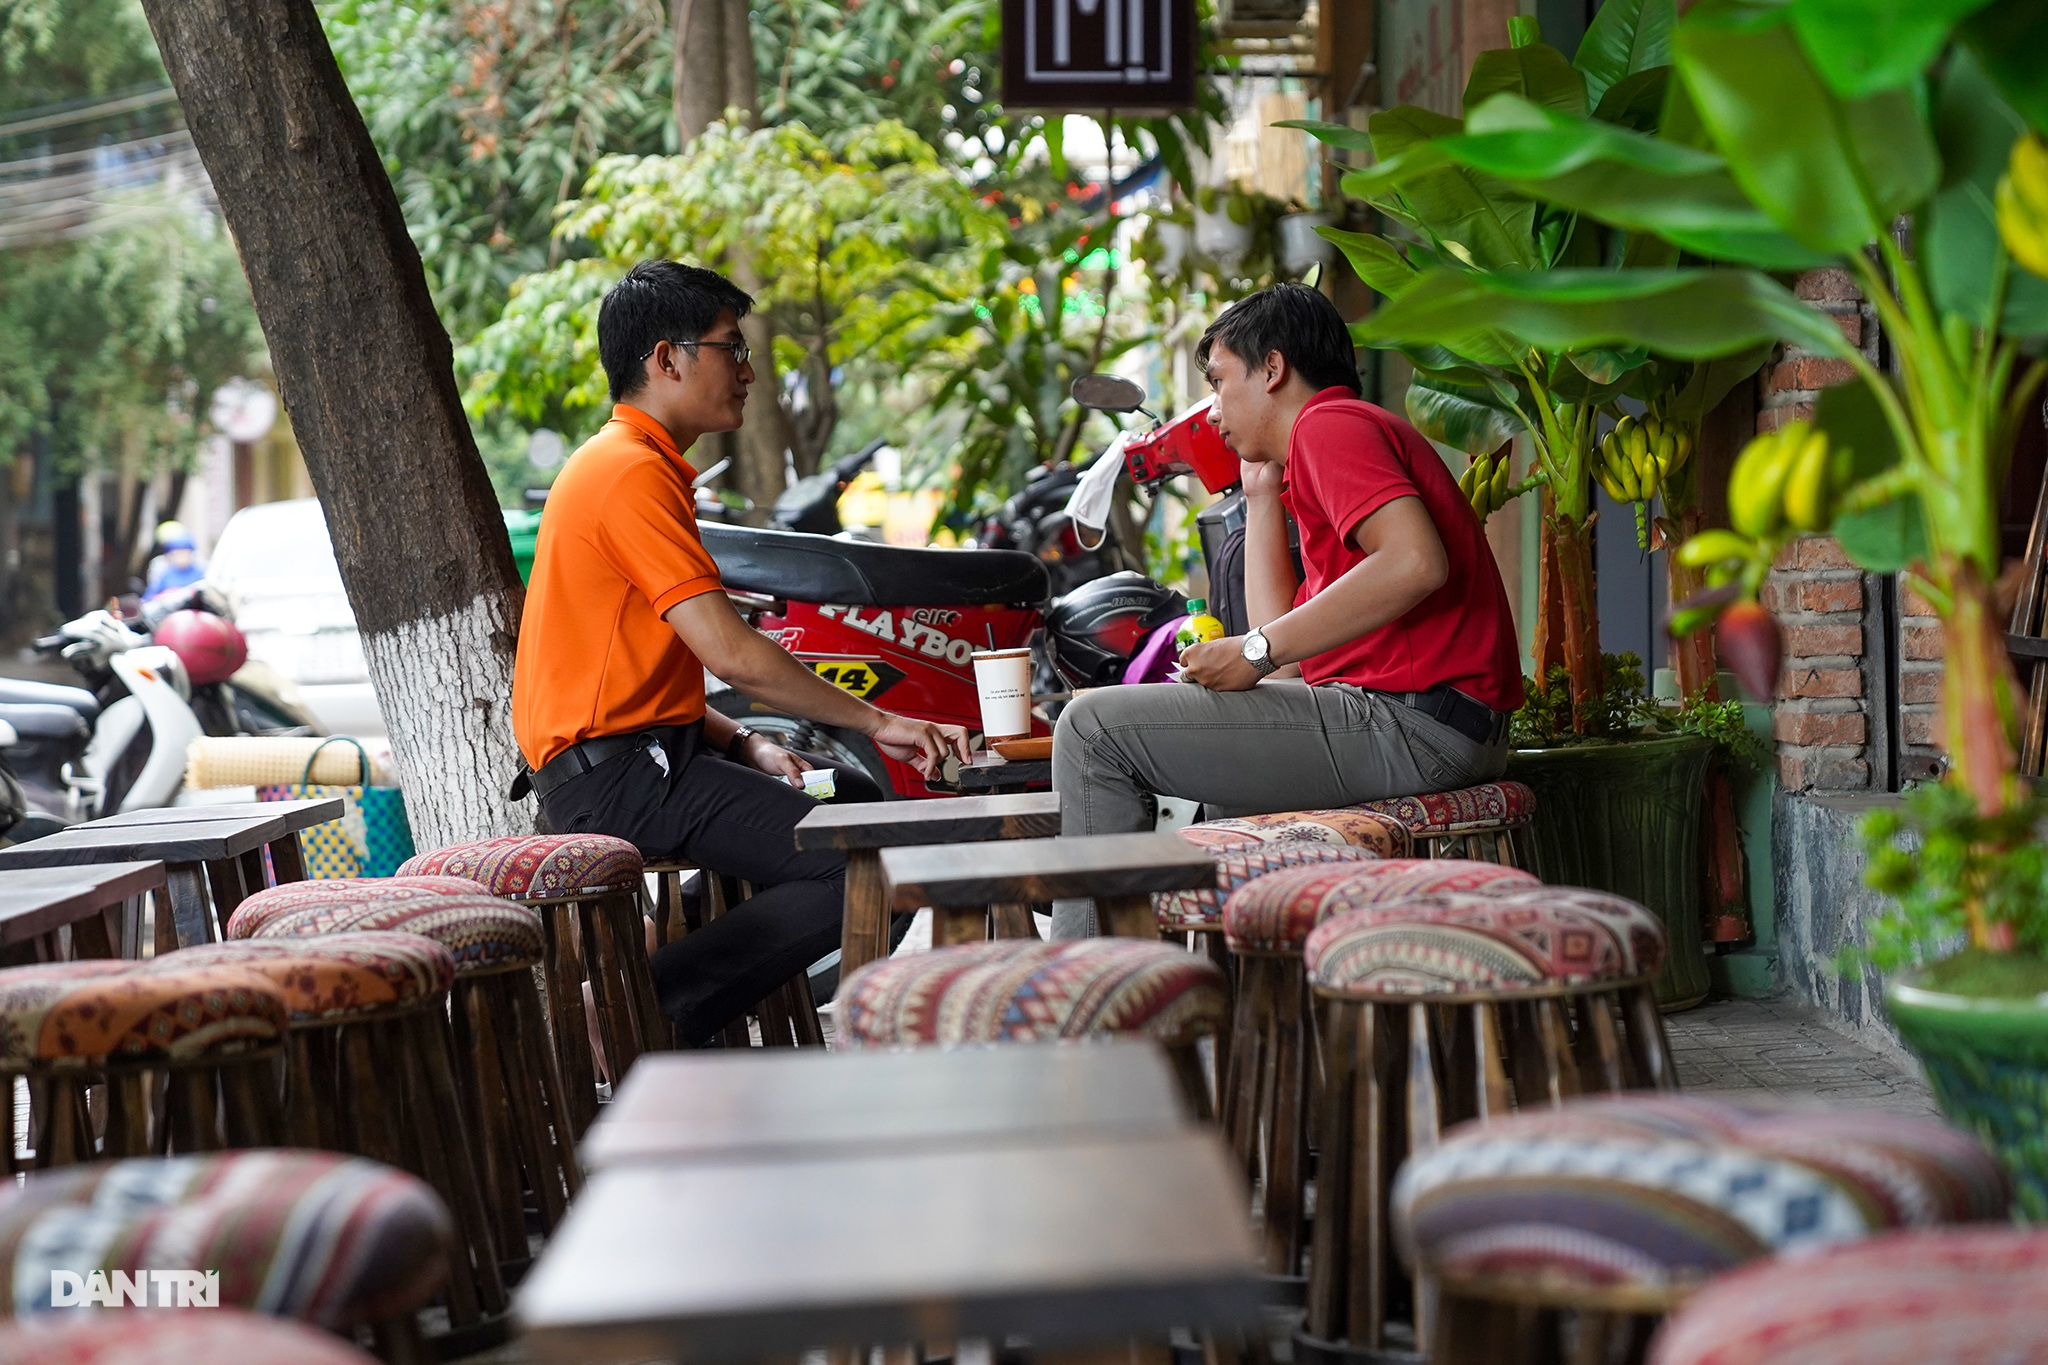 A Phu couple's coffee in the heart of Saigon - 8